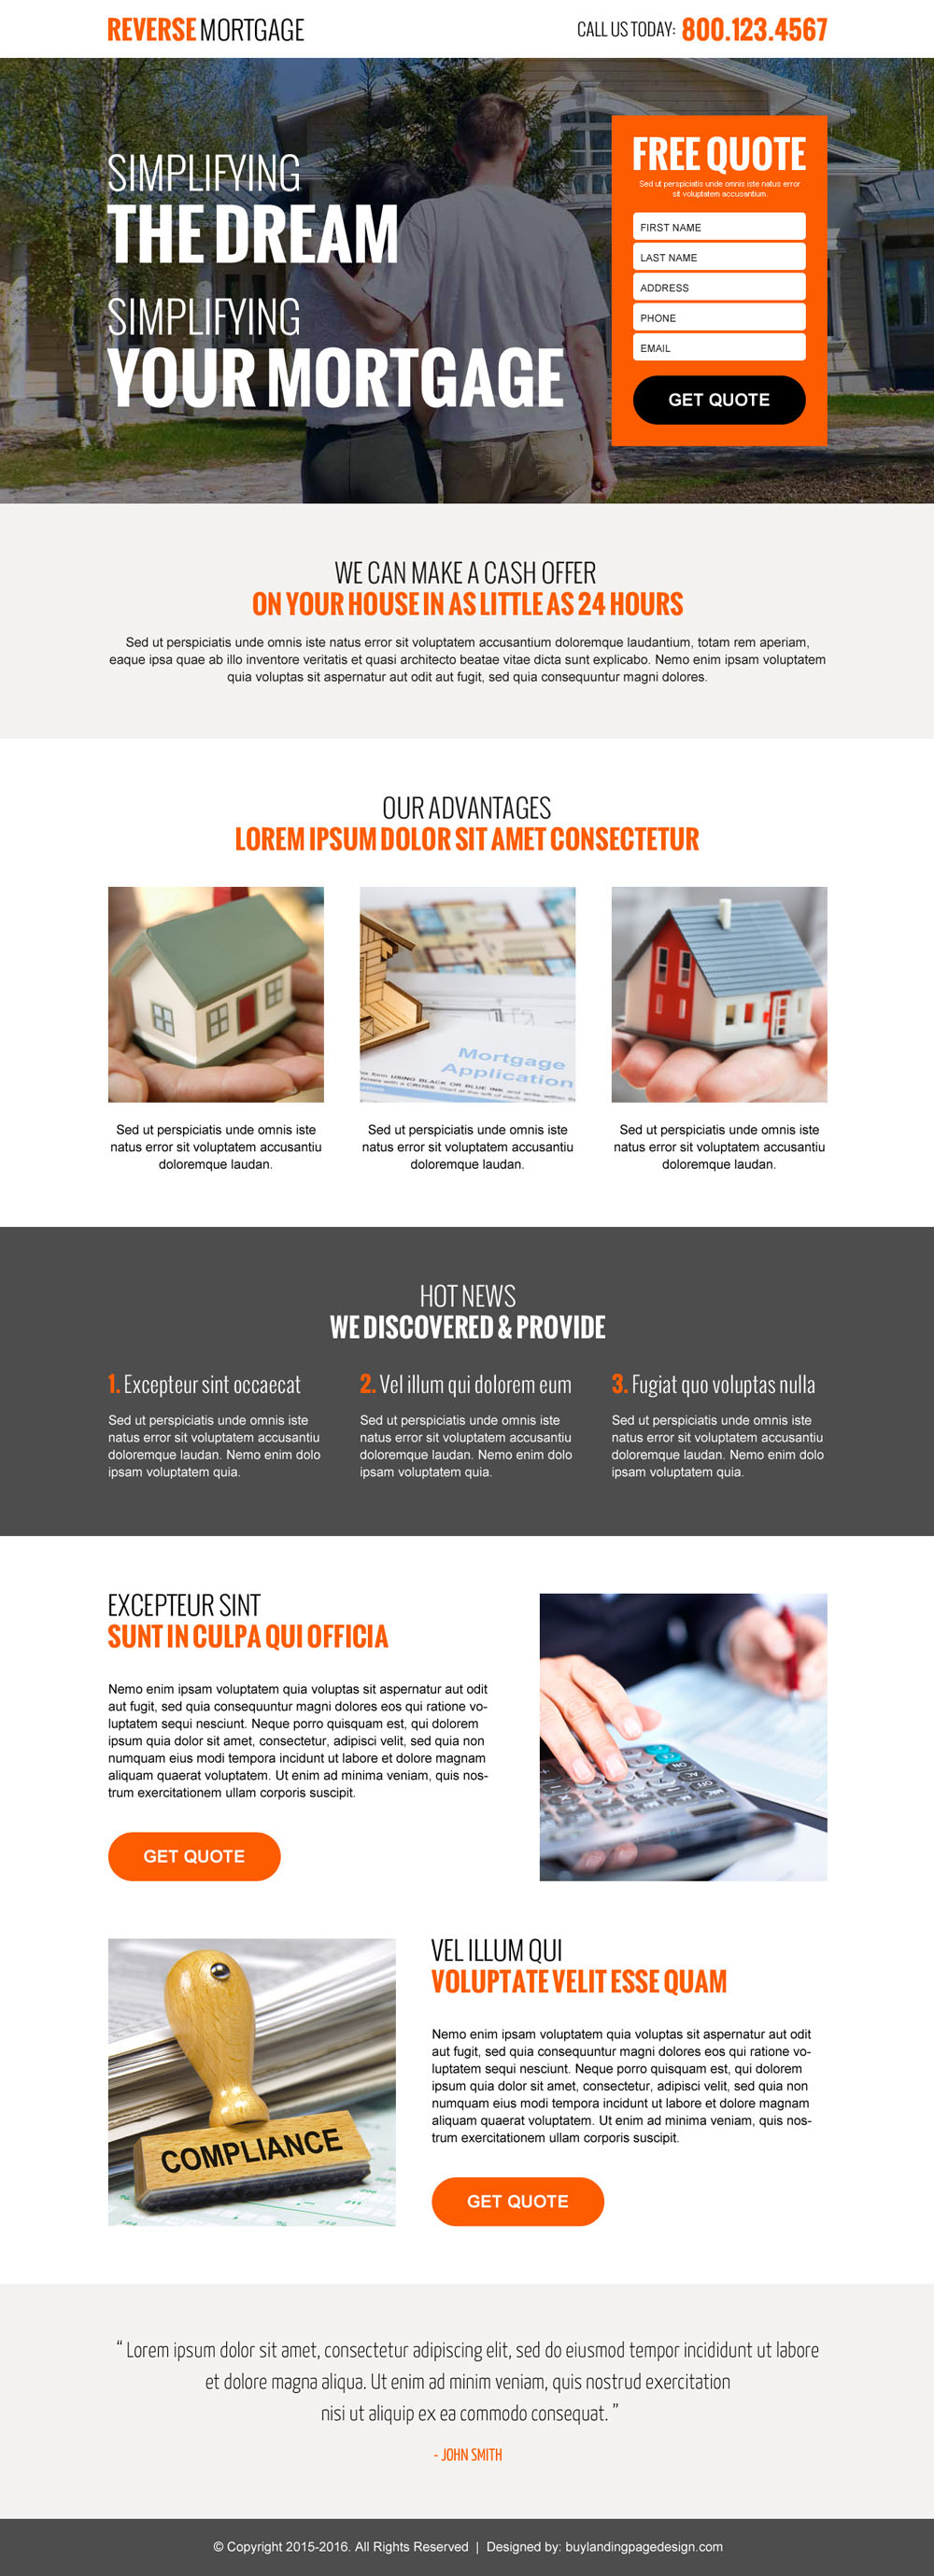 reverse-mortgage-free-quote-lead-gen-converting-landing-page-design-014